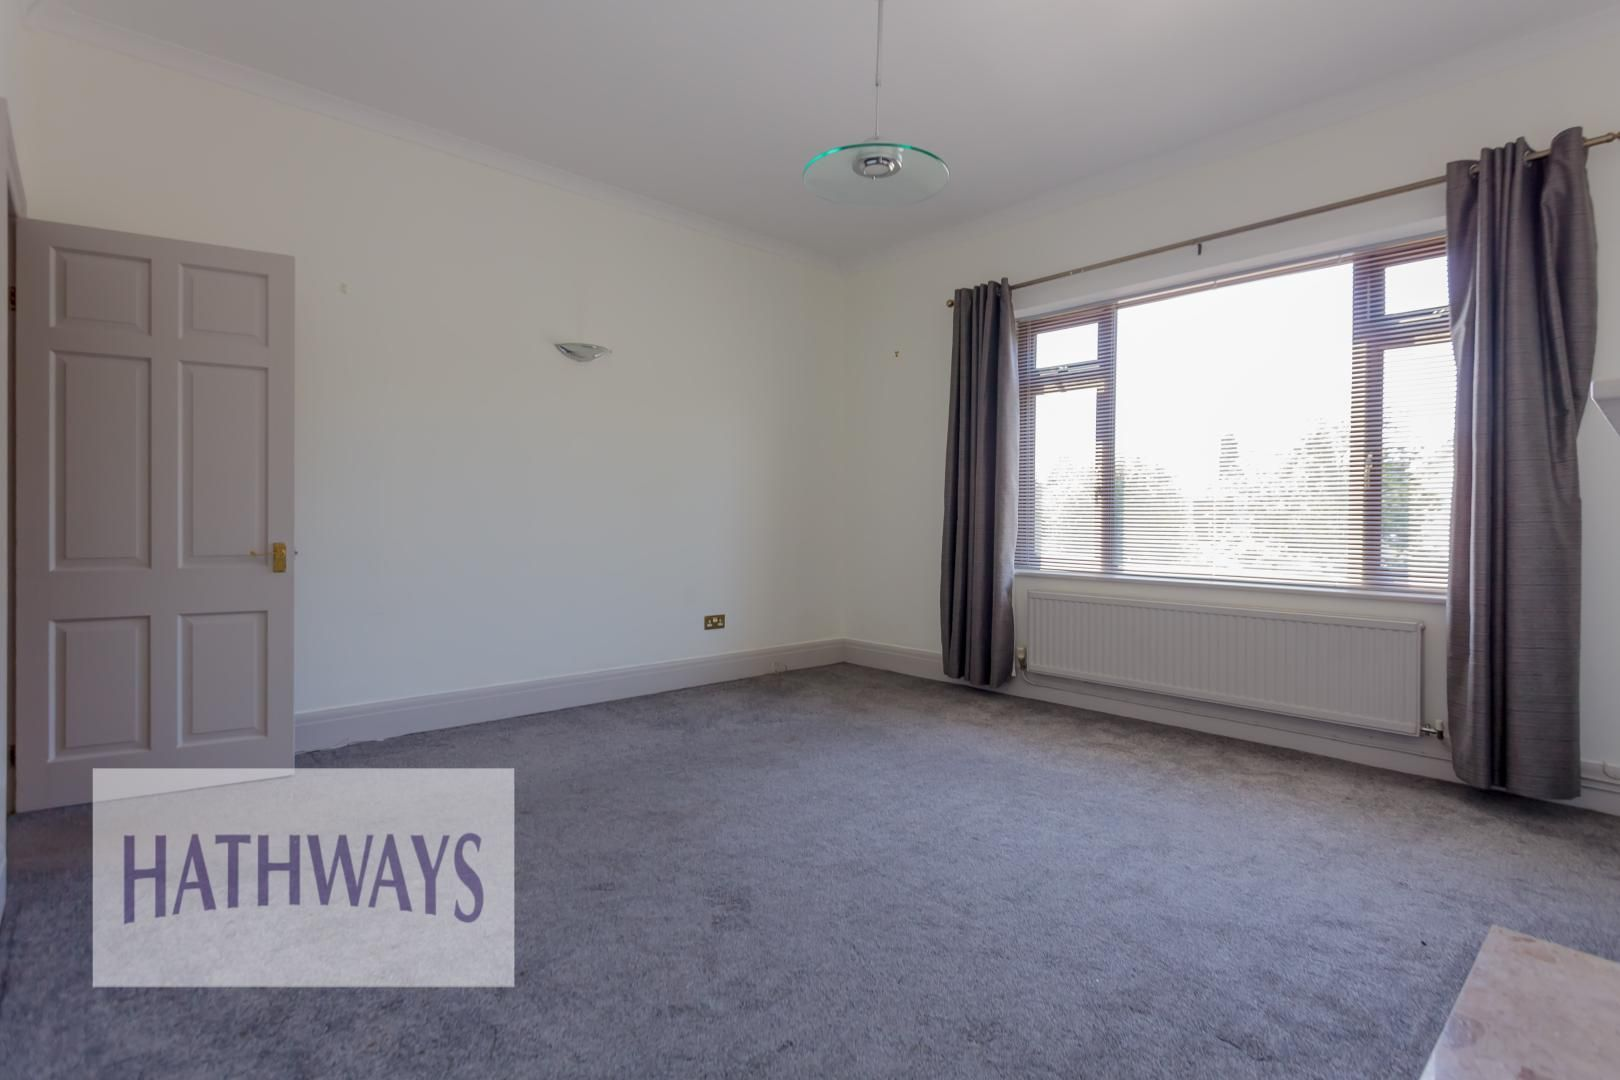 4 bed house for sale in Station Road  - Property Image 24